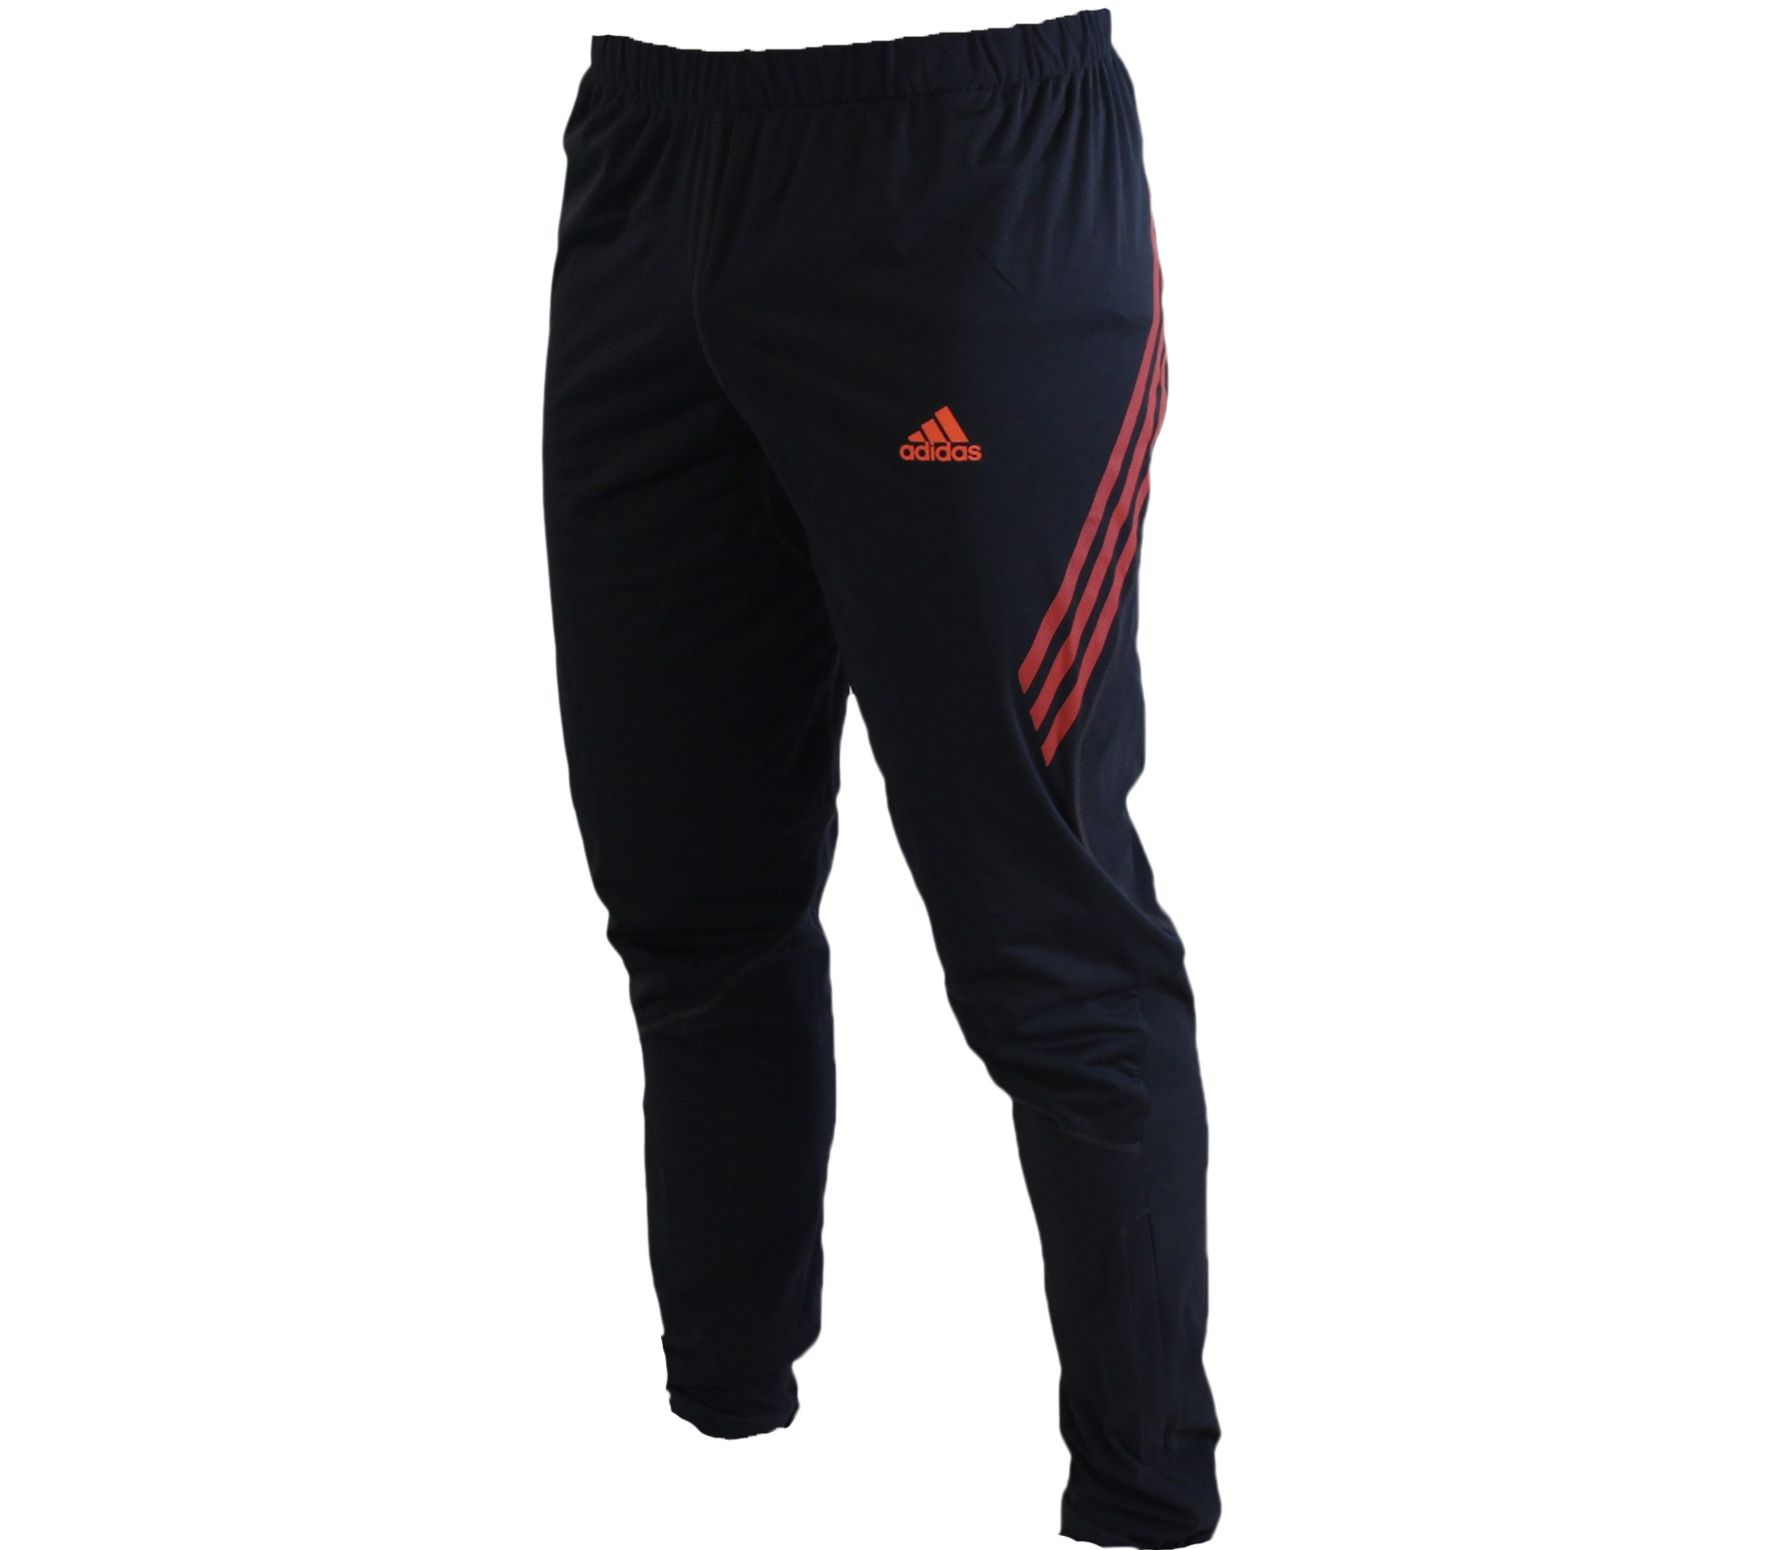 adidas pants for men ametis projects